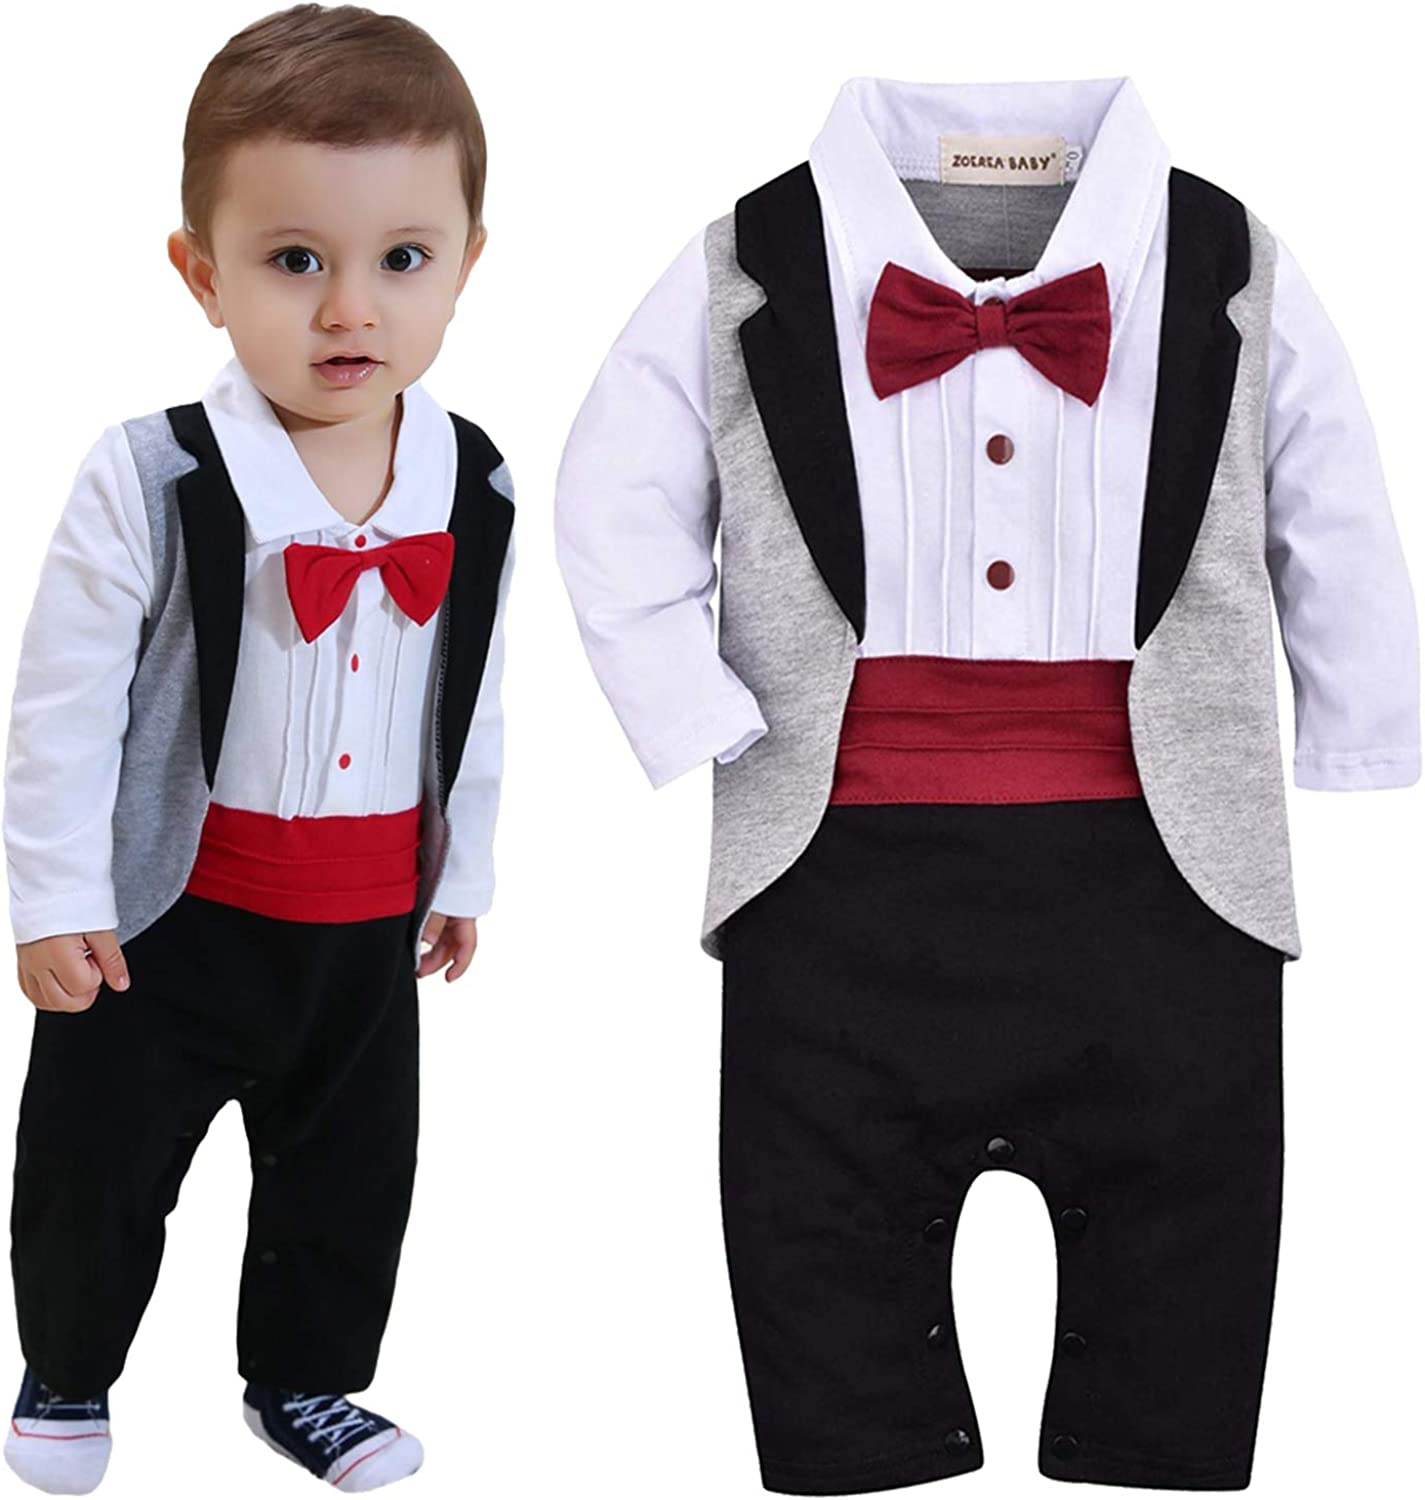 9 Carters Baby Boys Clothes Cotton Outfit Clothing Set 3 6 18 12 24 Month